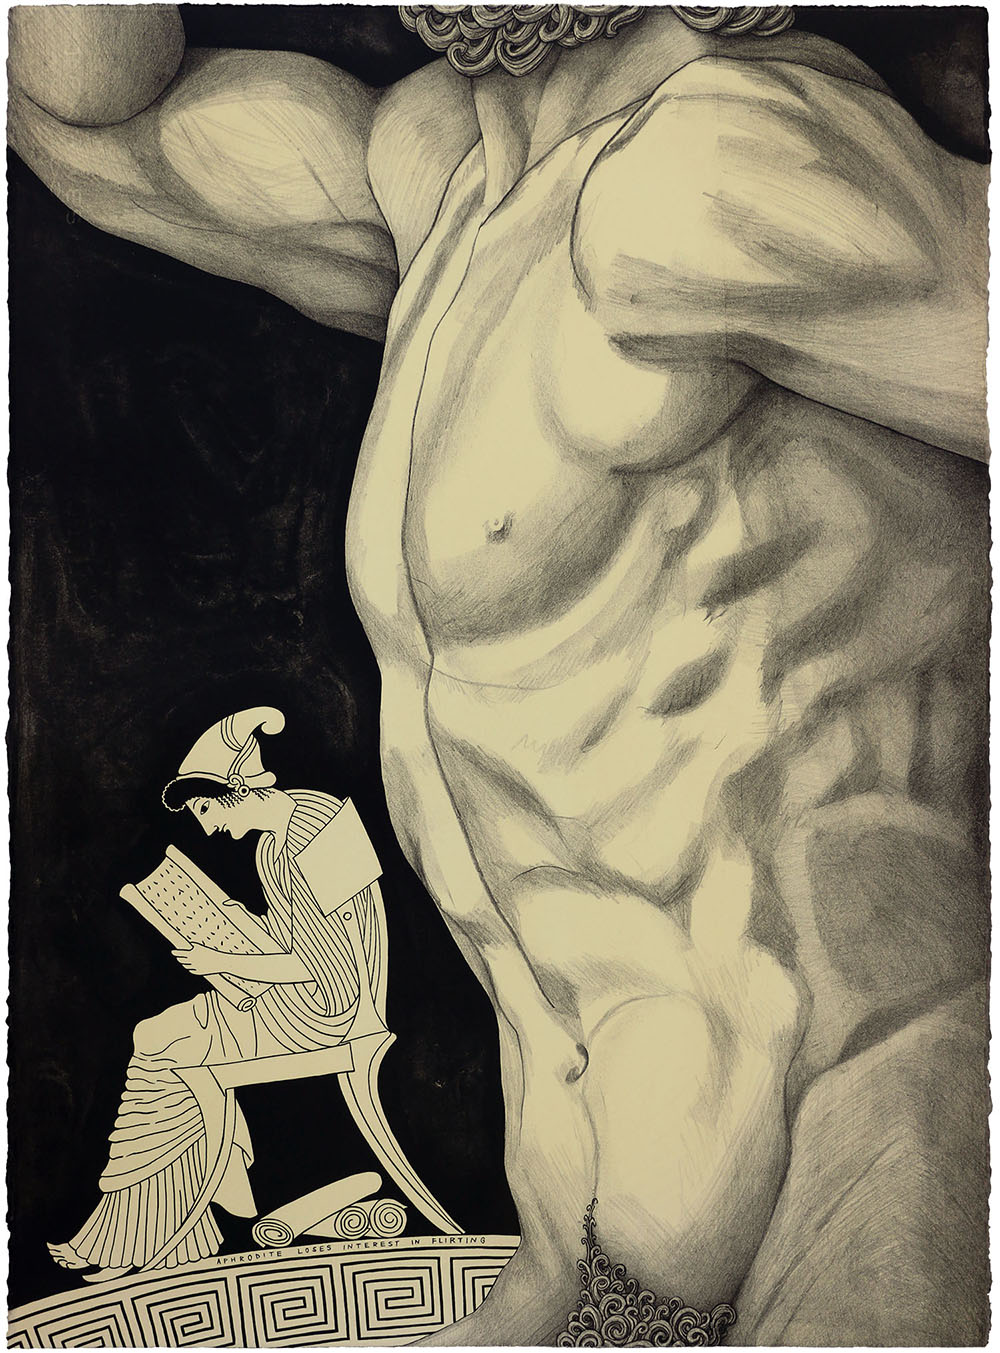 'Aphrodite Loses Interest in Flirting', 2018 560 x 760 x 50mm. Lithograph, Edition of 24.